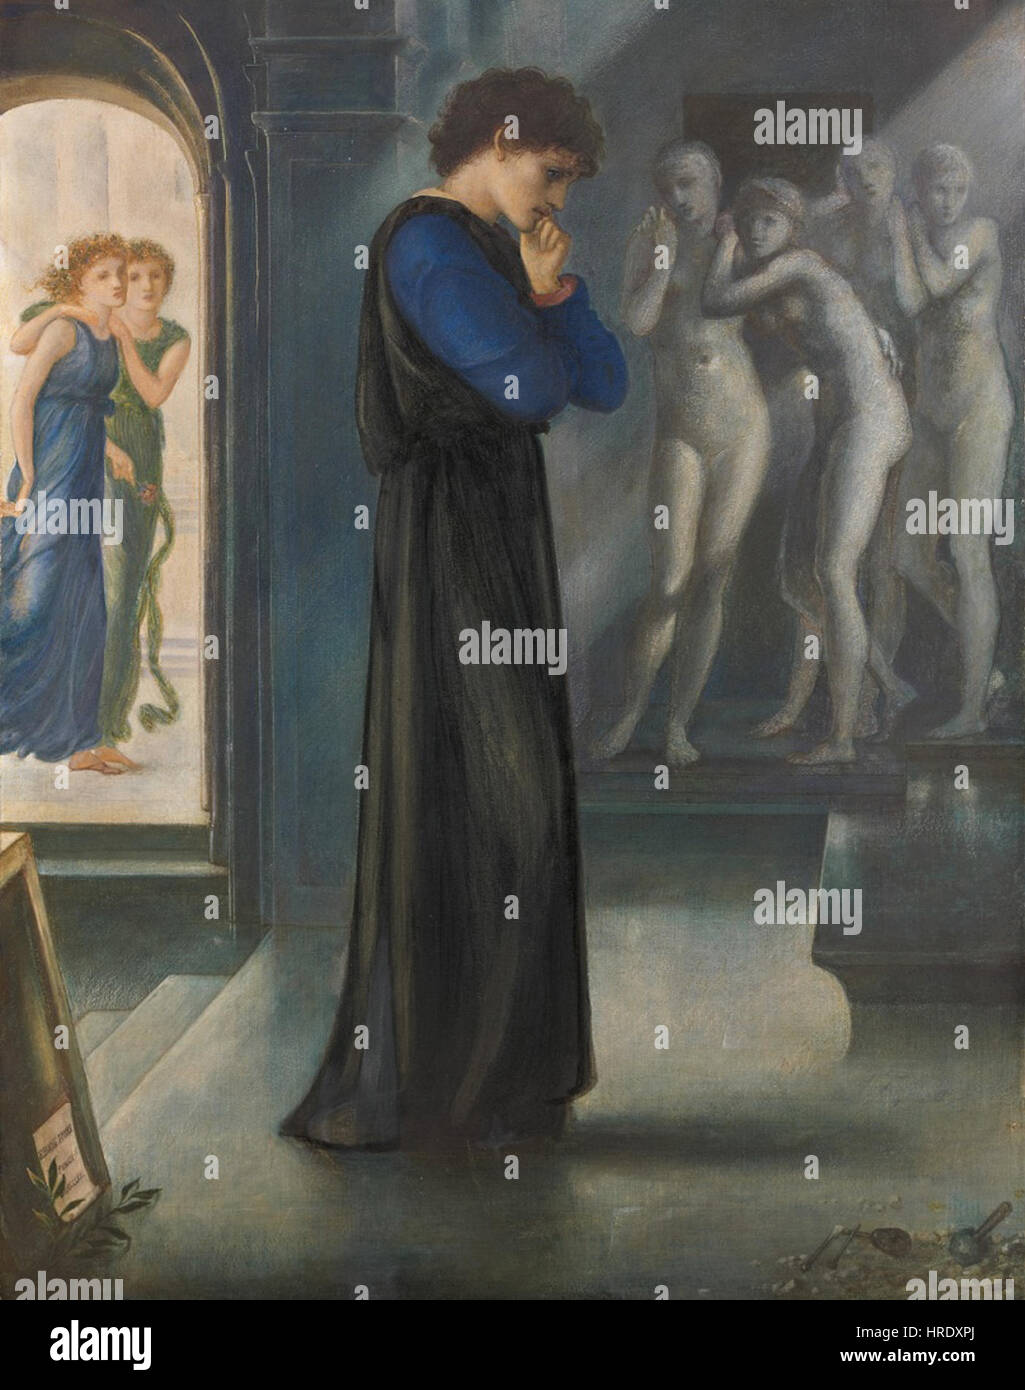 Edward Burne-Jones - Pigmalione - I desideri del cuore Stock Photo